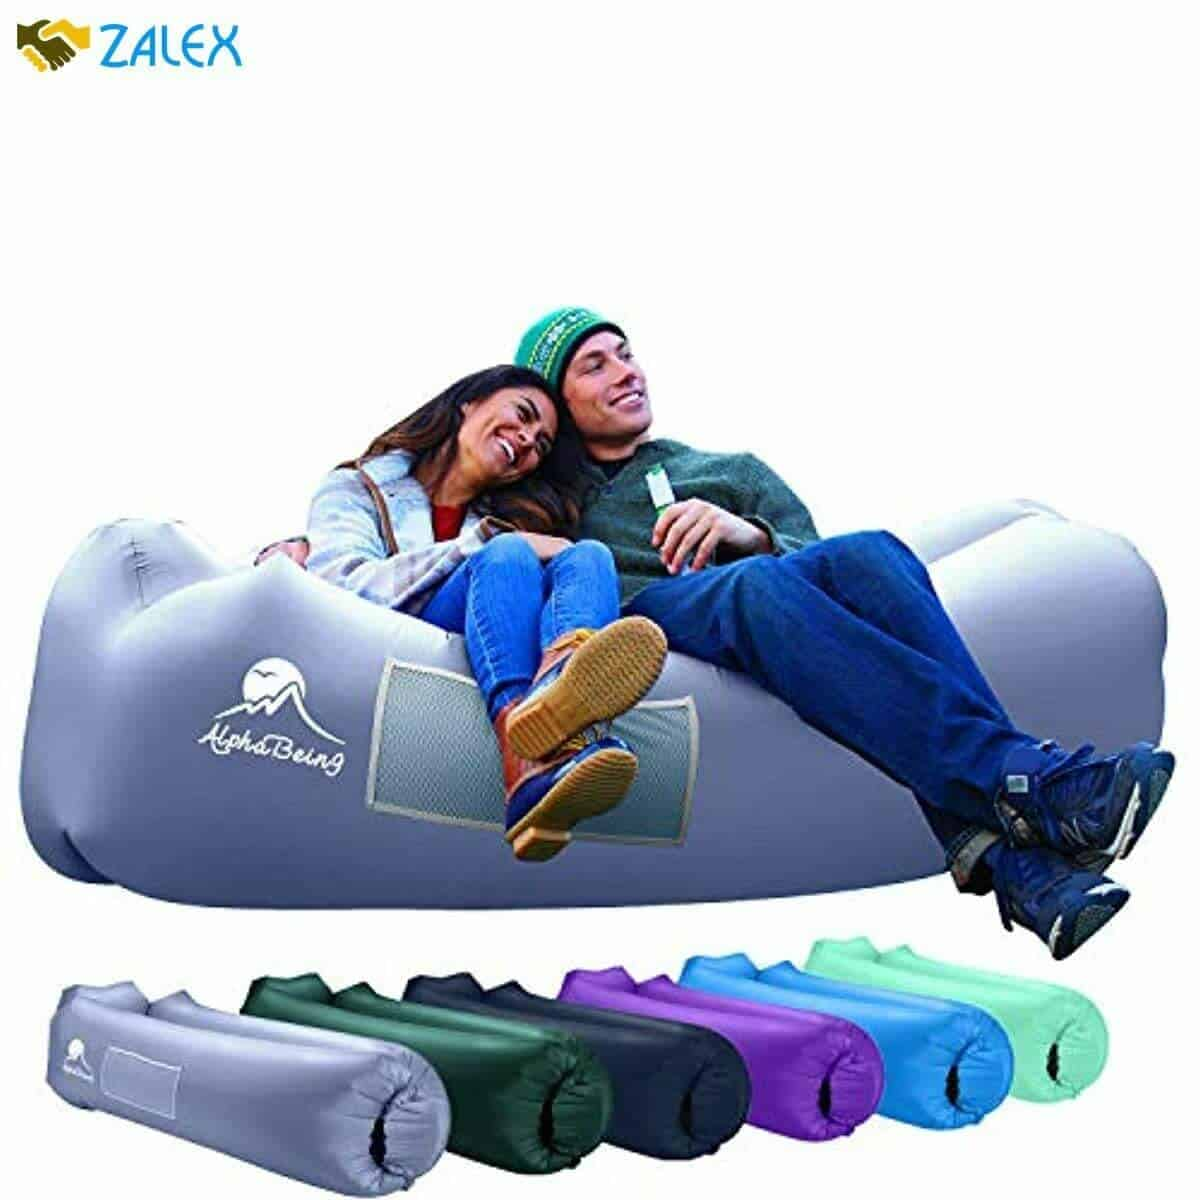 AlphaBeing-Inflatable-Lounger